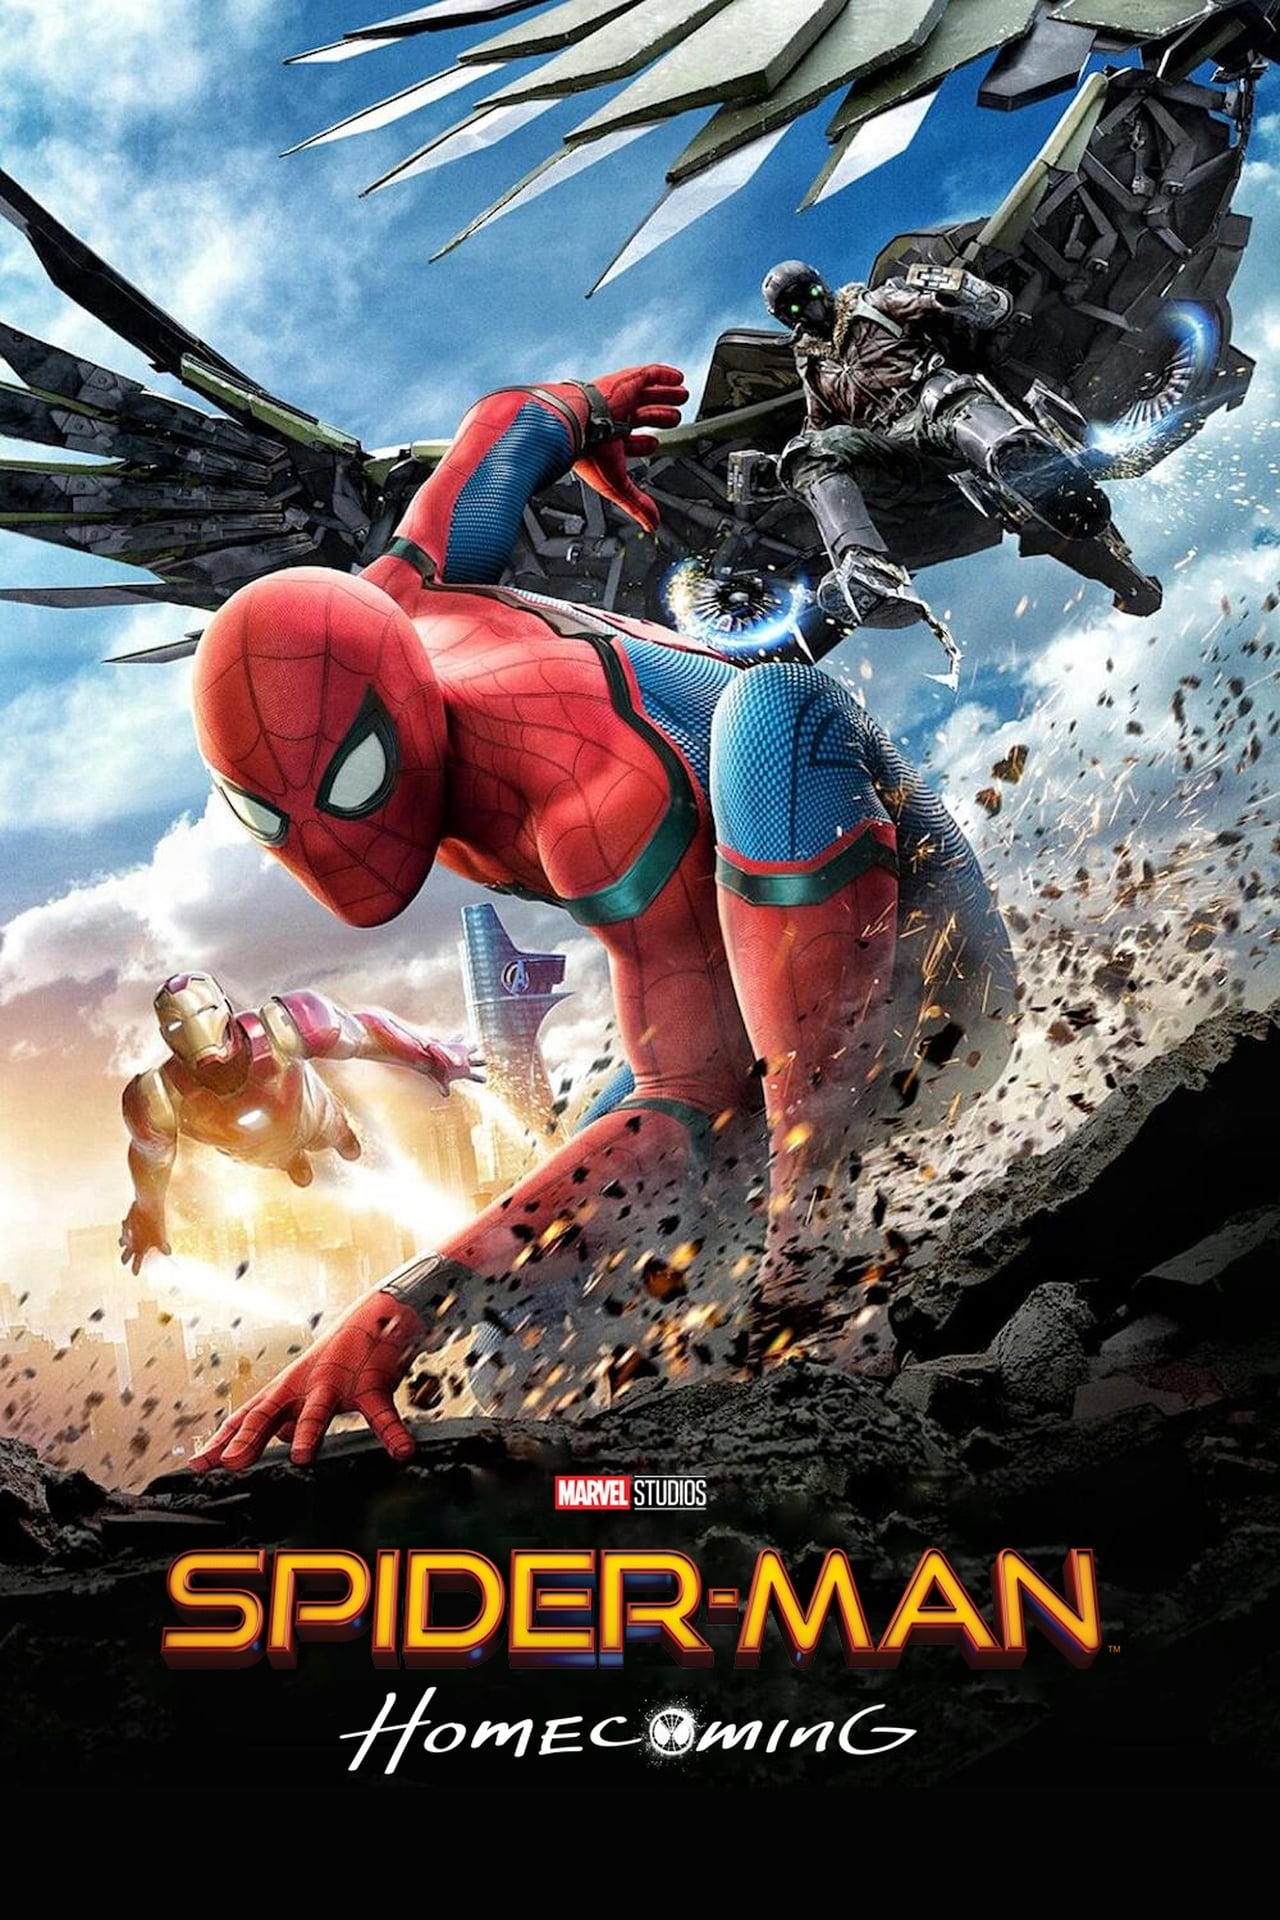 [Streaming] Spider-Man: Homecoming (2017) Online Free Putlocker